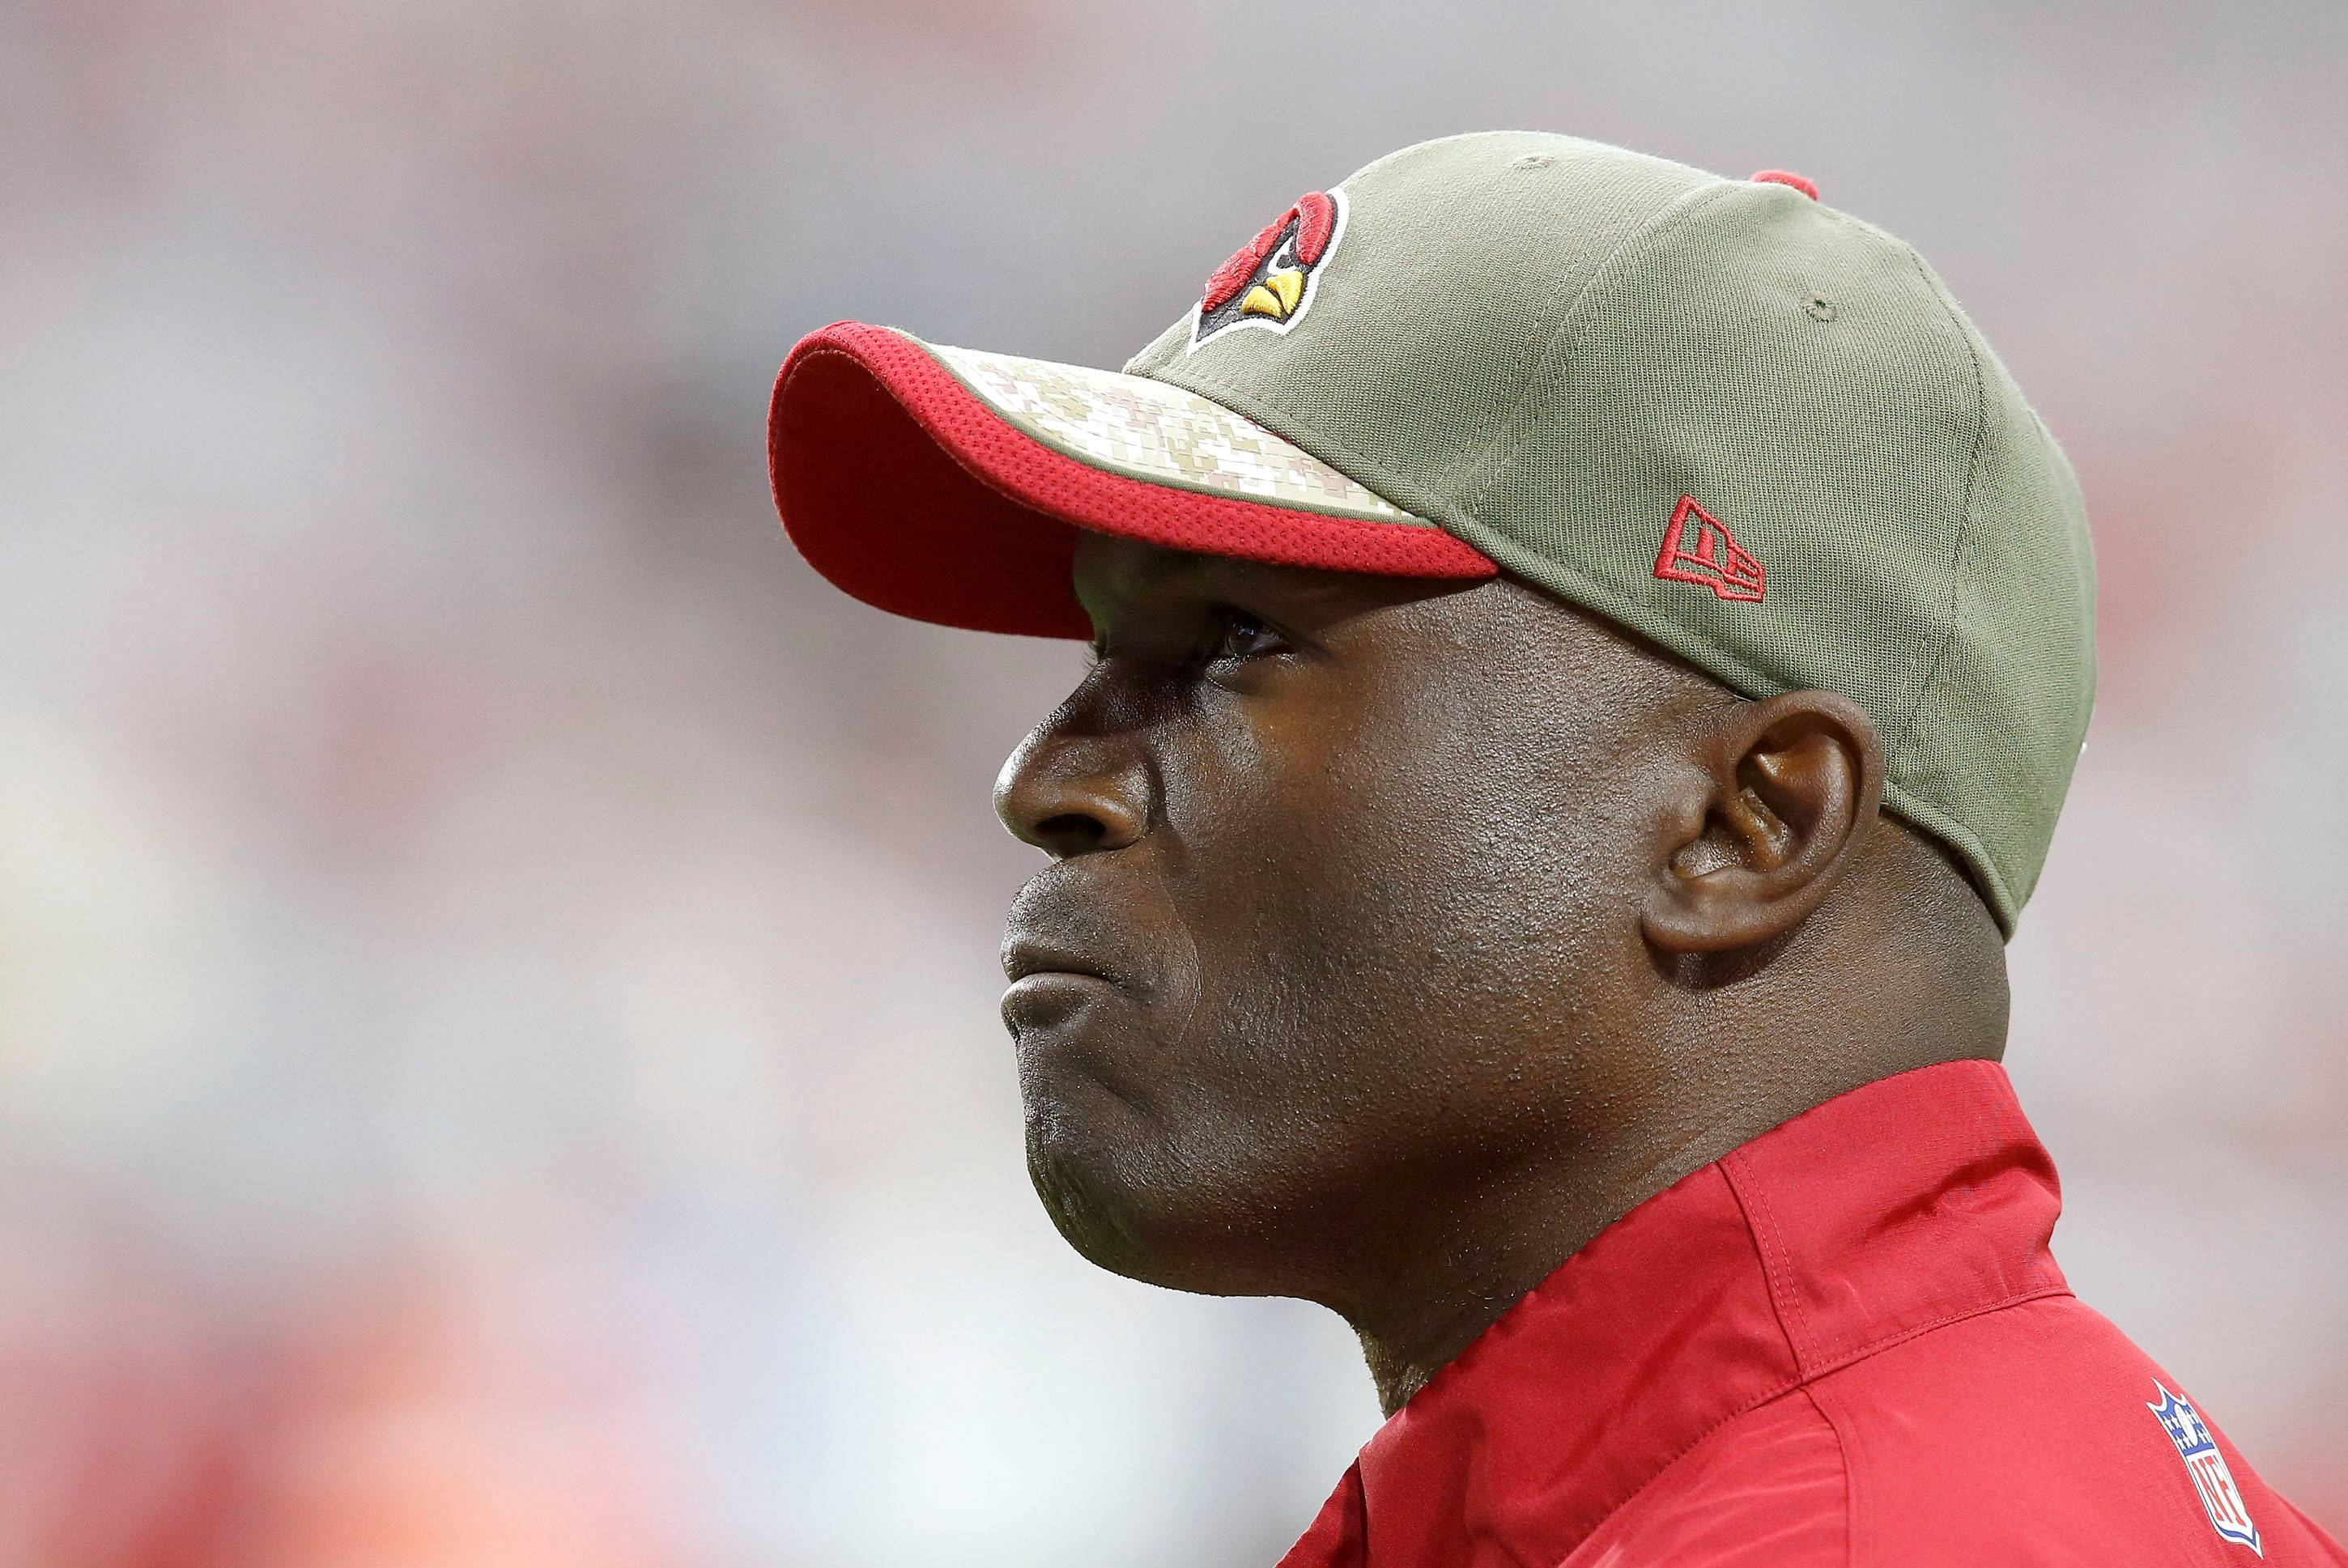 Todd Bowles, a candidate for the Bears' head coaching job, is the defensive coordinator for the Arizona Cardinals. He has also held NFL coaching positions with the Eagles, Jets, Browns, Cowboys and Dolphins.